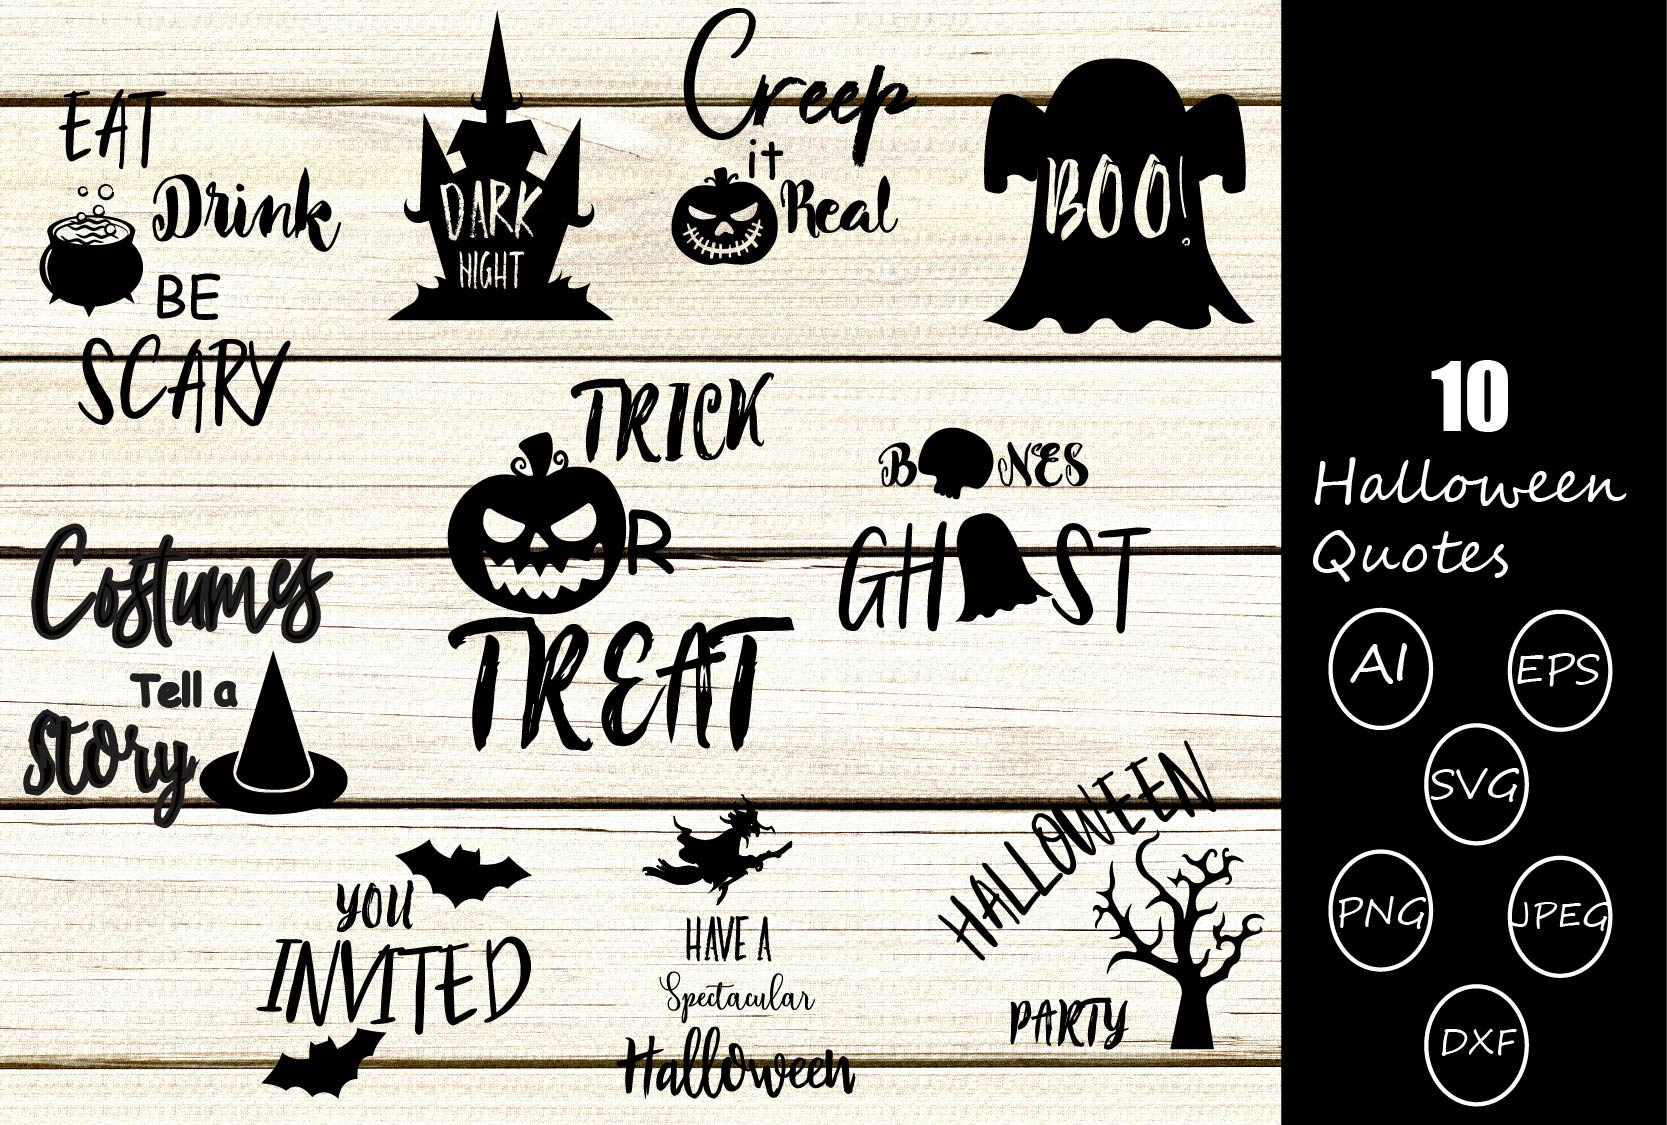 Download Free Halloween Quotes Graphic By Design Haul Creative Fabrica for Cricut Explore, Silhouette and other cutting machines.